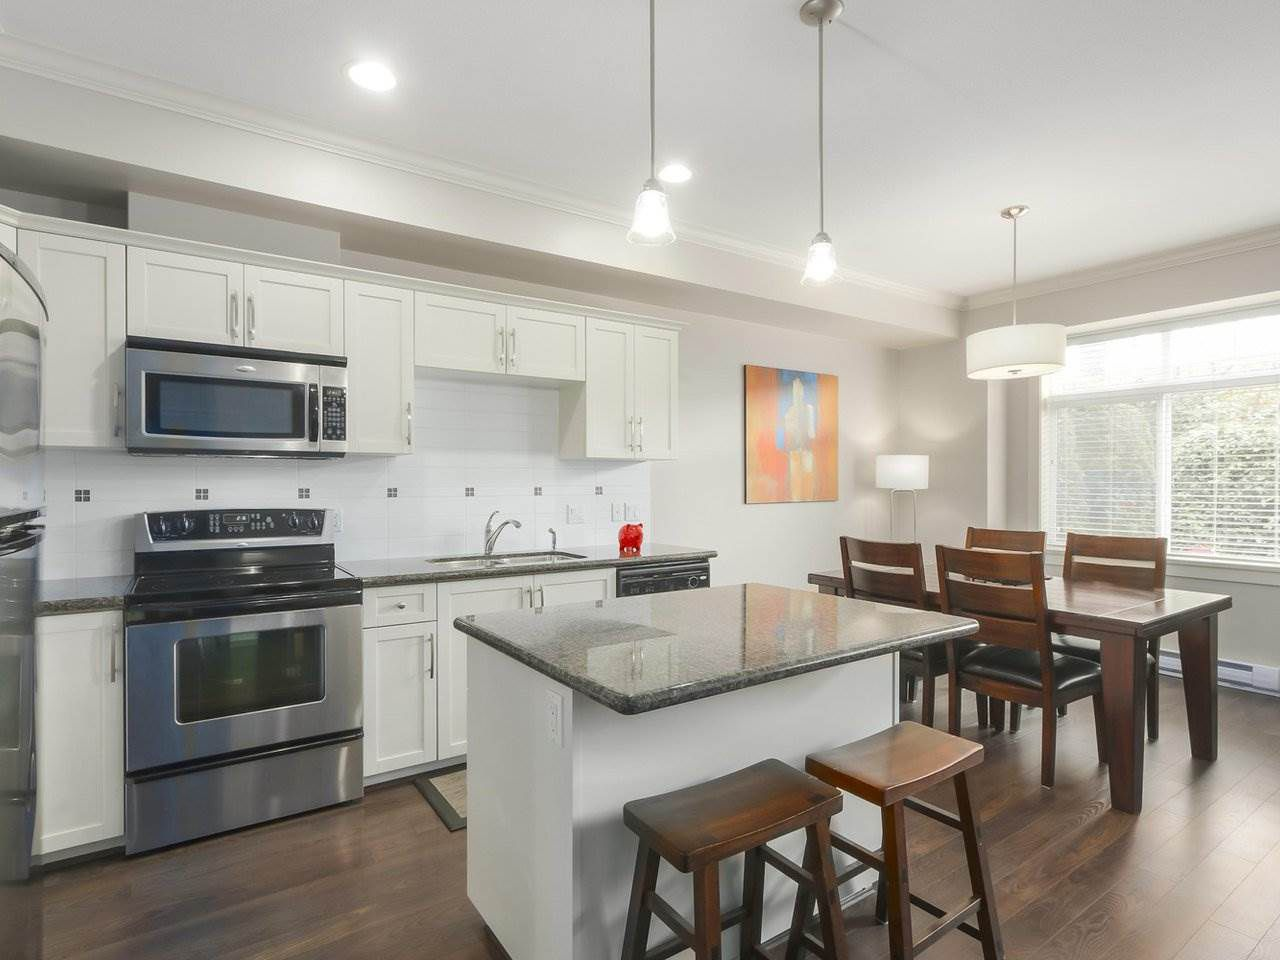 """Main Photo: 4 4910 CENTRAL Avenue in Delta: Hawthorne Townhouse for sale in """"CENTRAL PARK"""" (Ladner)  : MLS®# R2355391"""